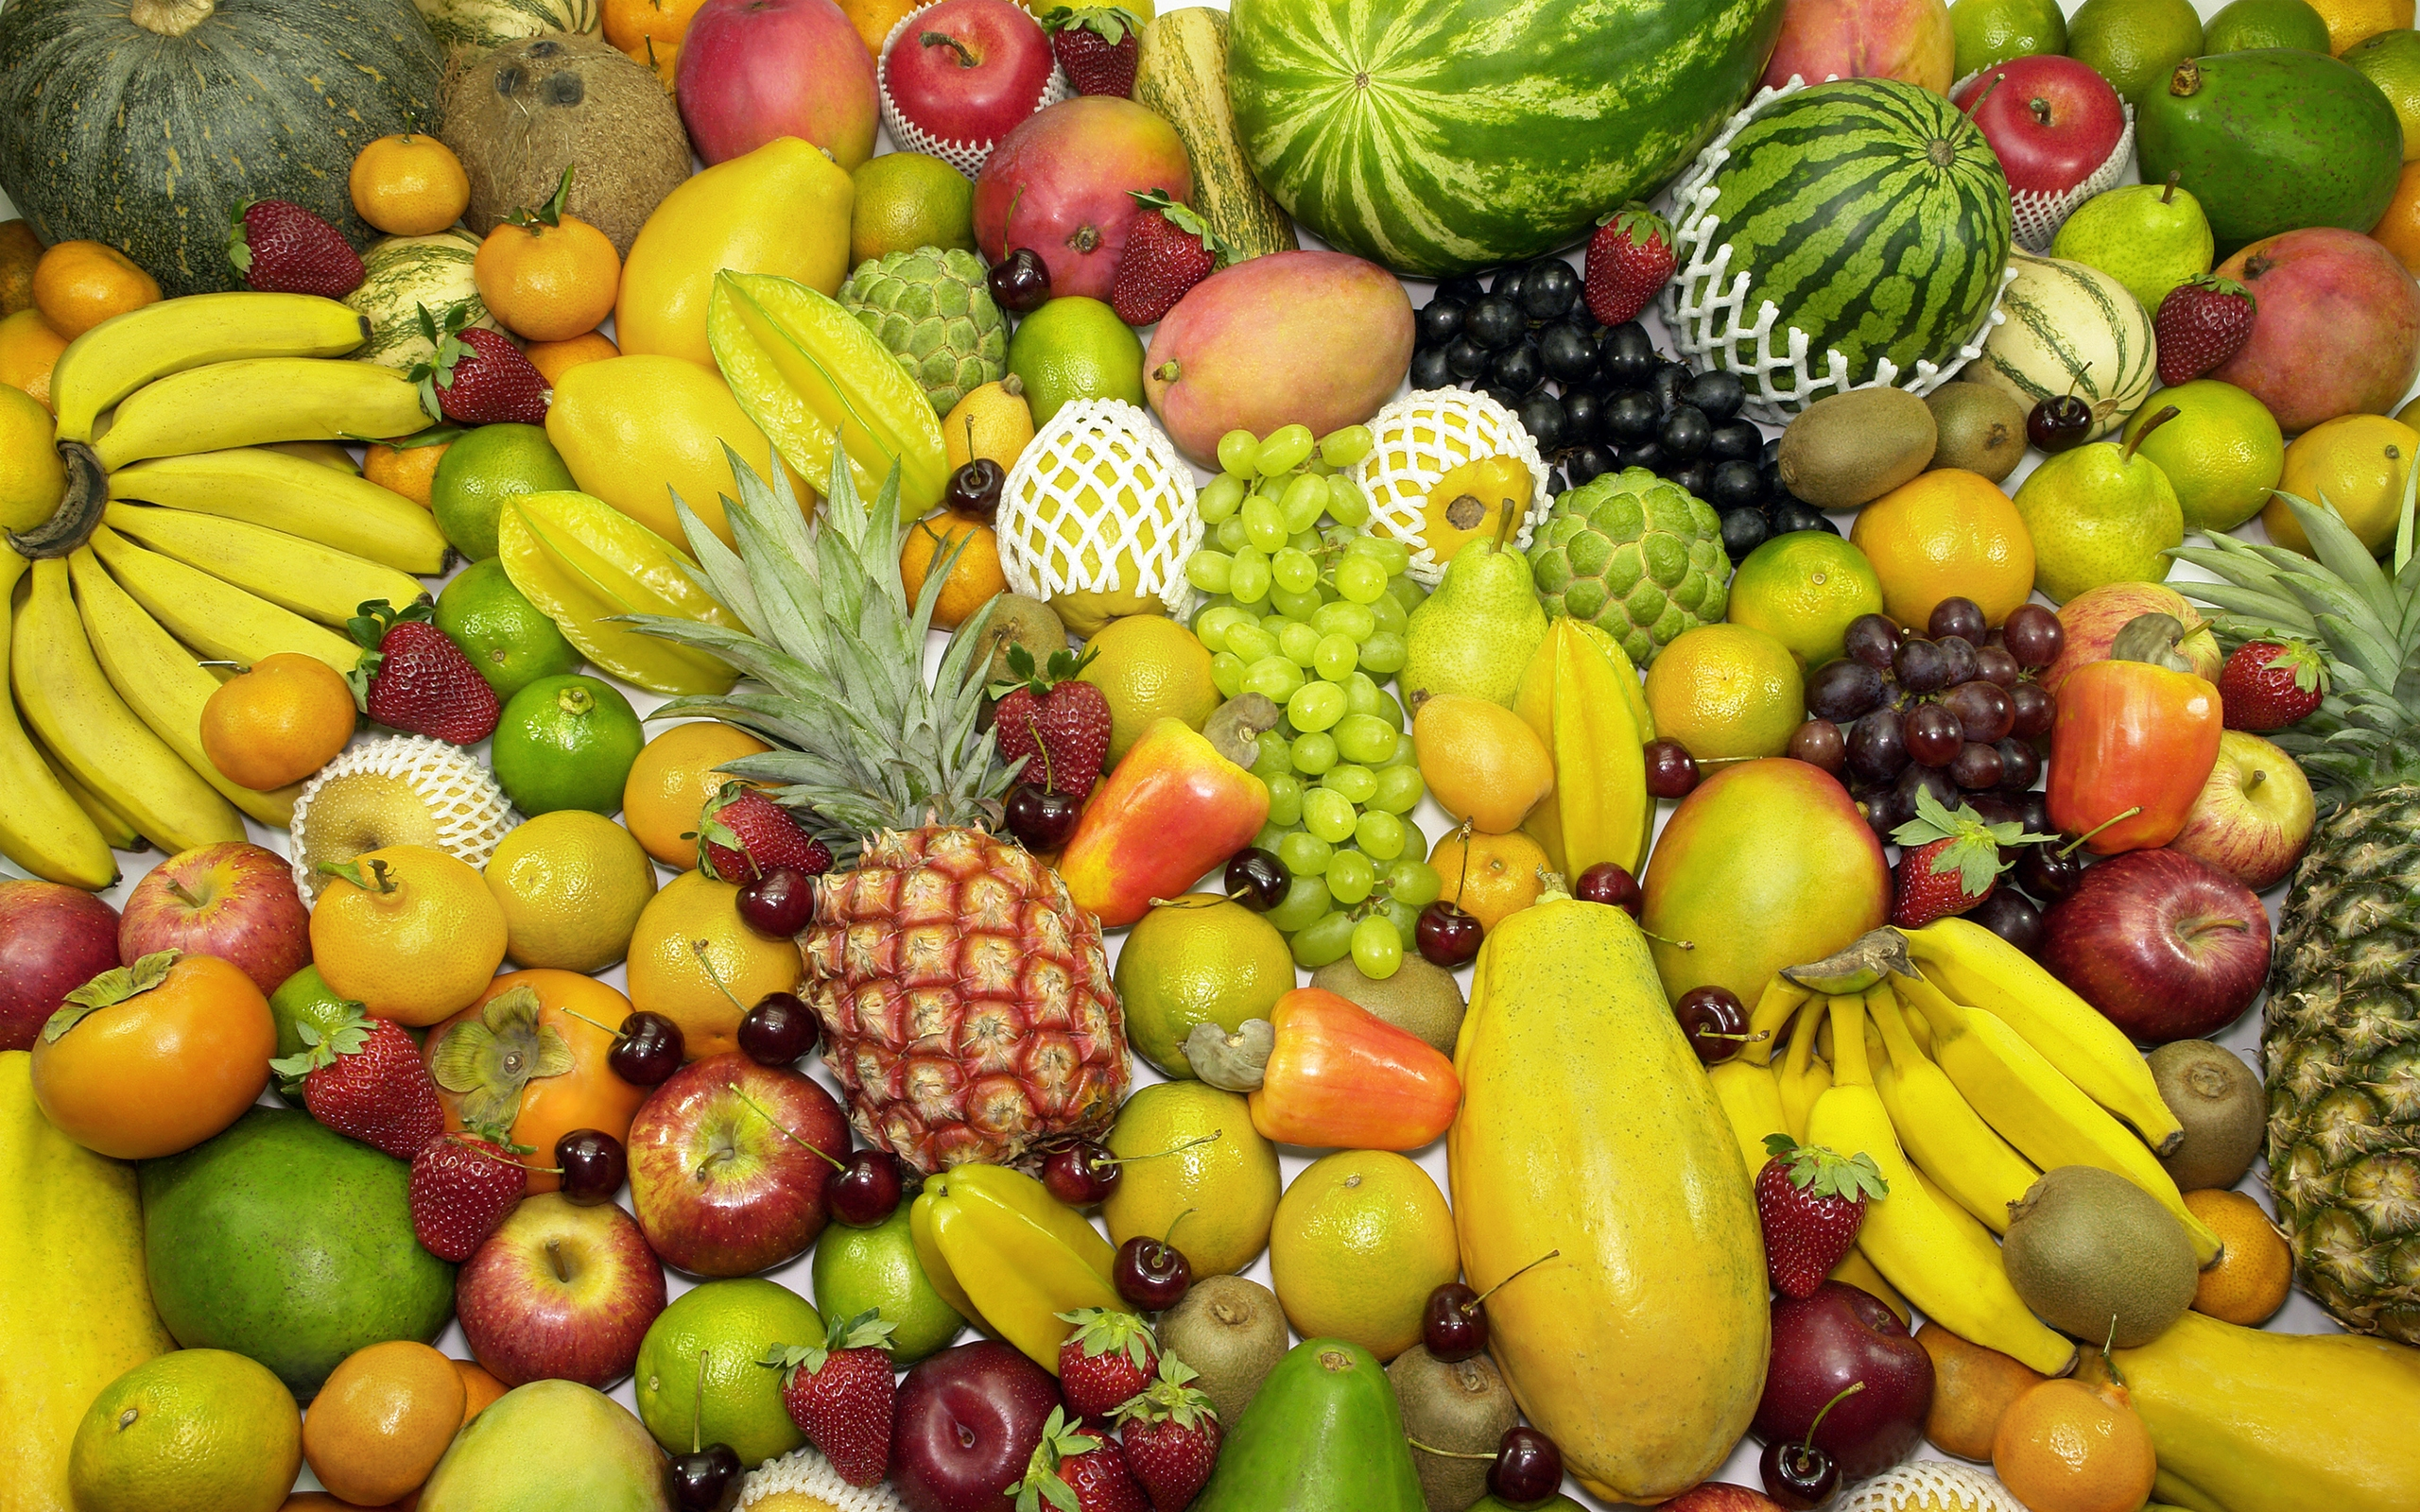 Fruits hd images - Hd Wallpaper Background Id 368872